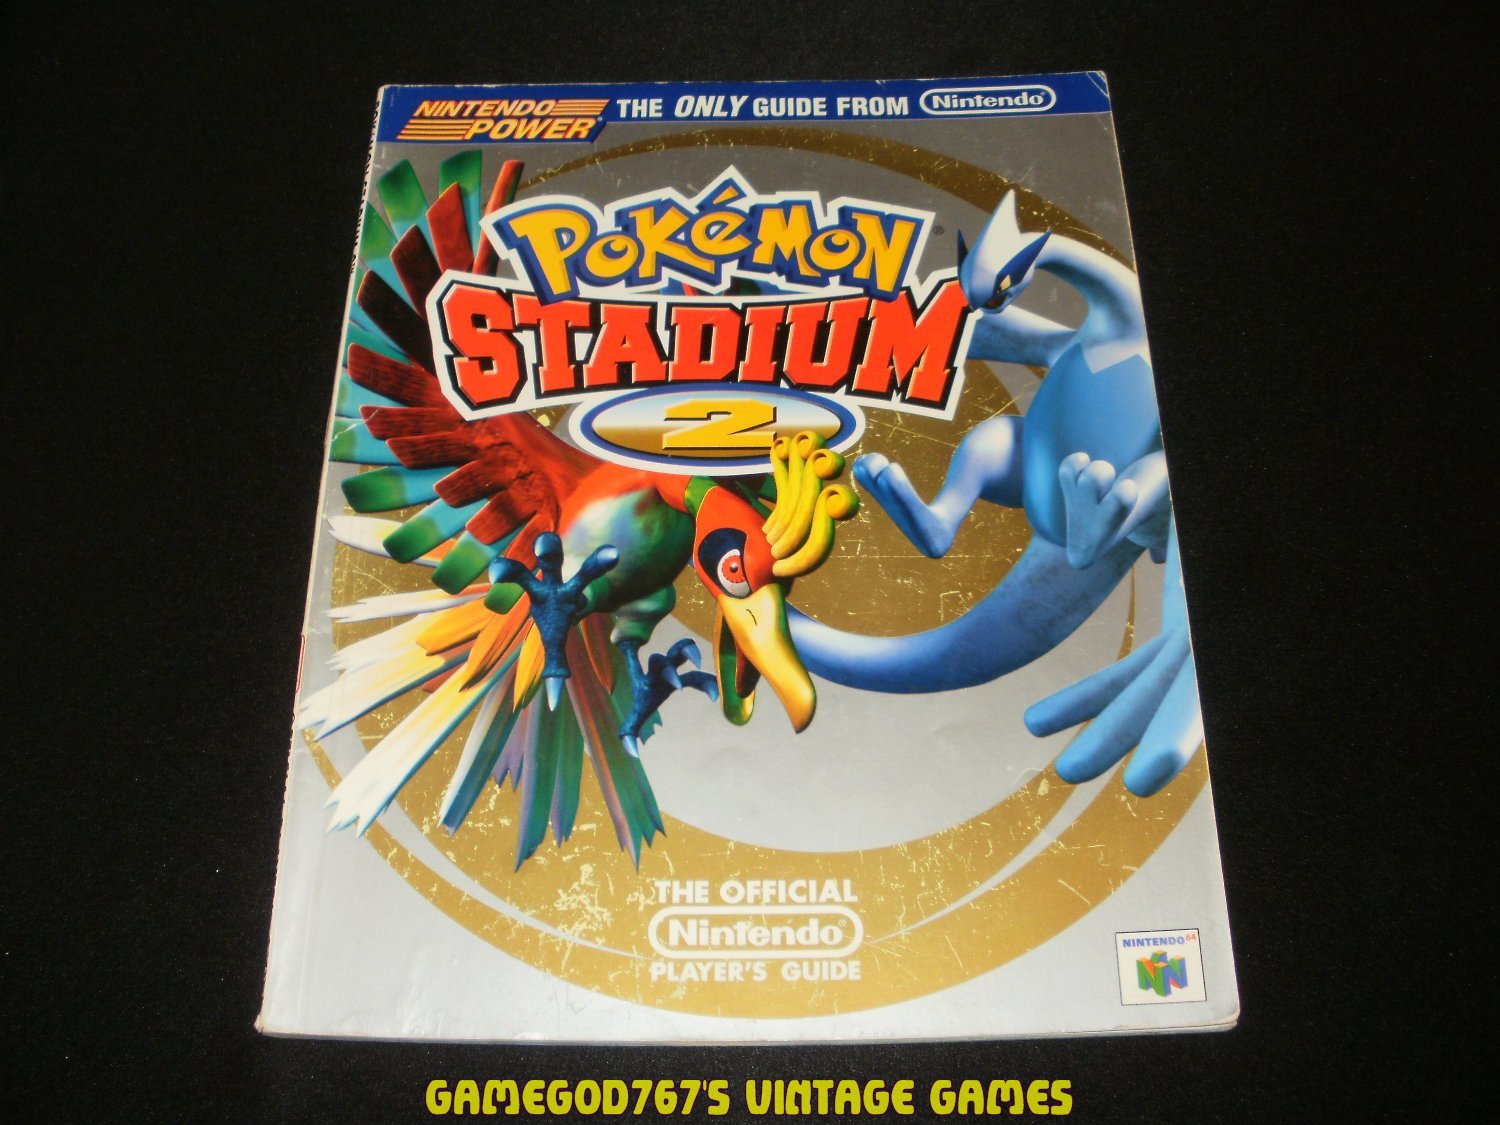 Pokemon Stadium 2 The Official Player's Guide - Nintendo Power (2001) - Paperback